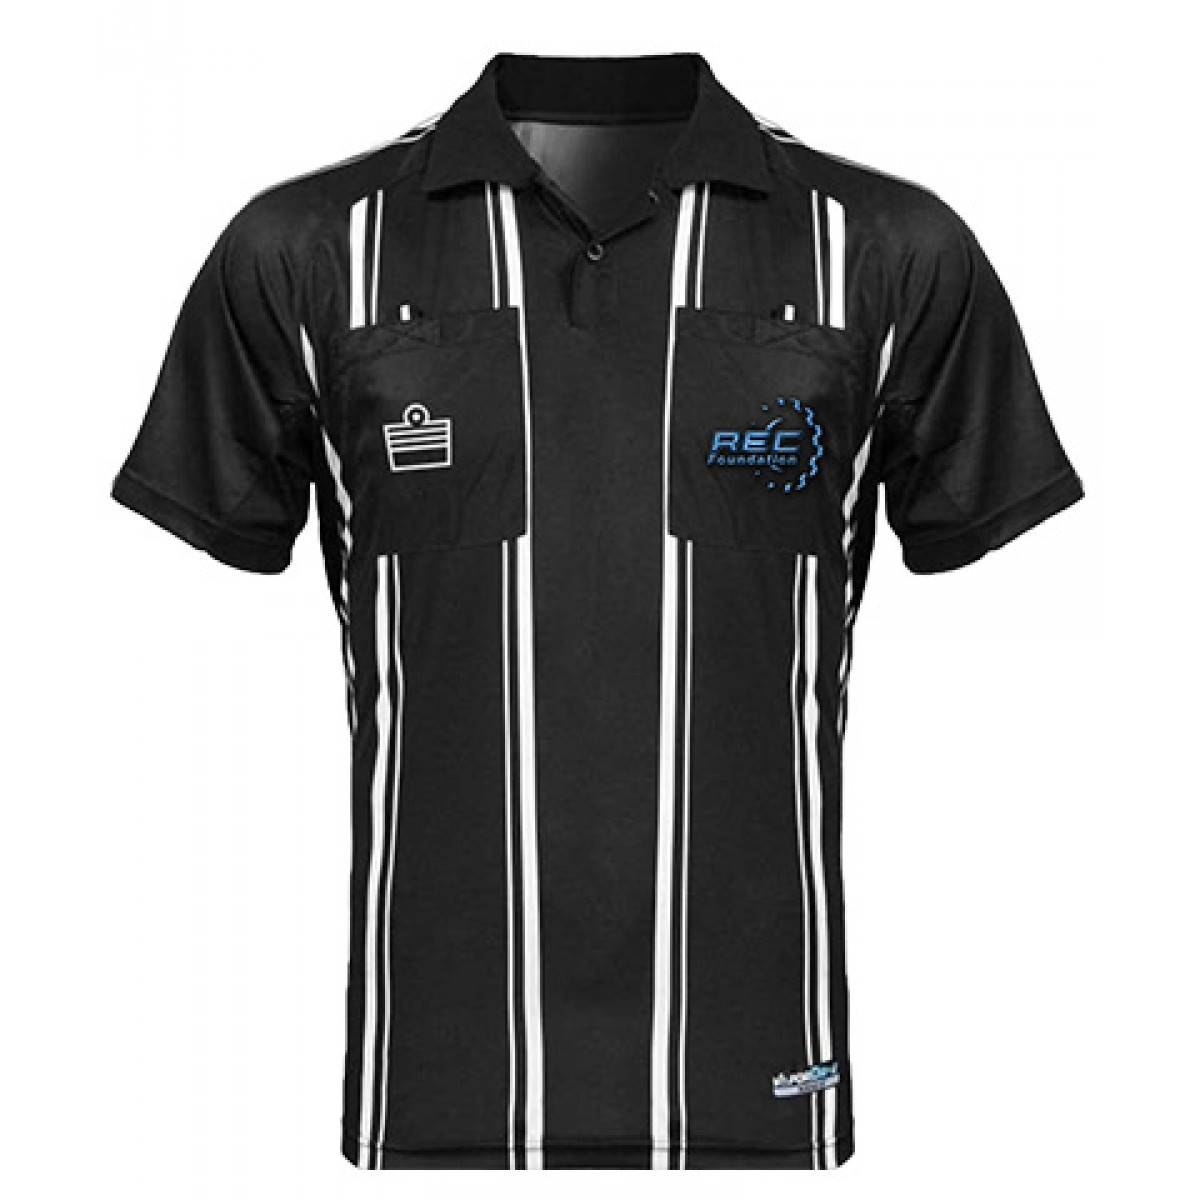 Admiral Pro Referee Jersey SS-Black-2XL